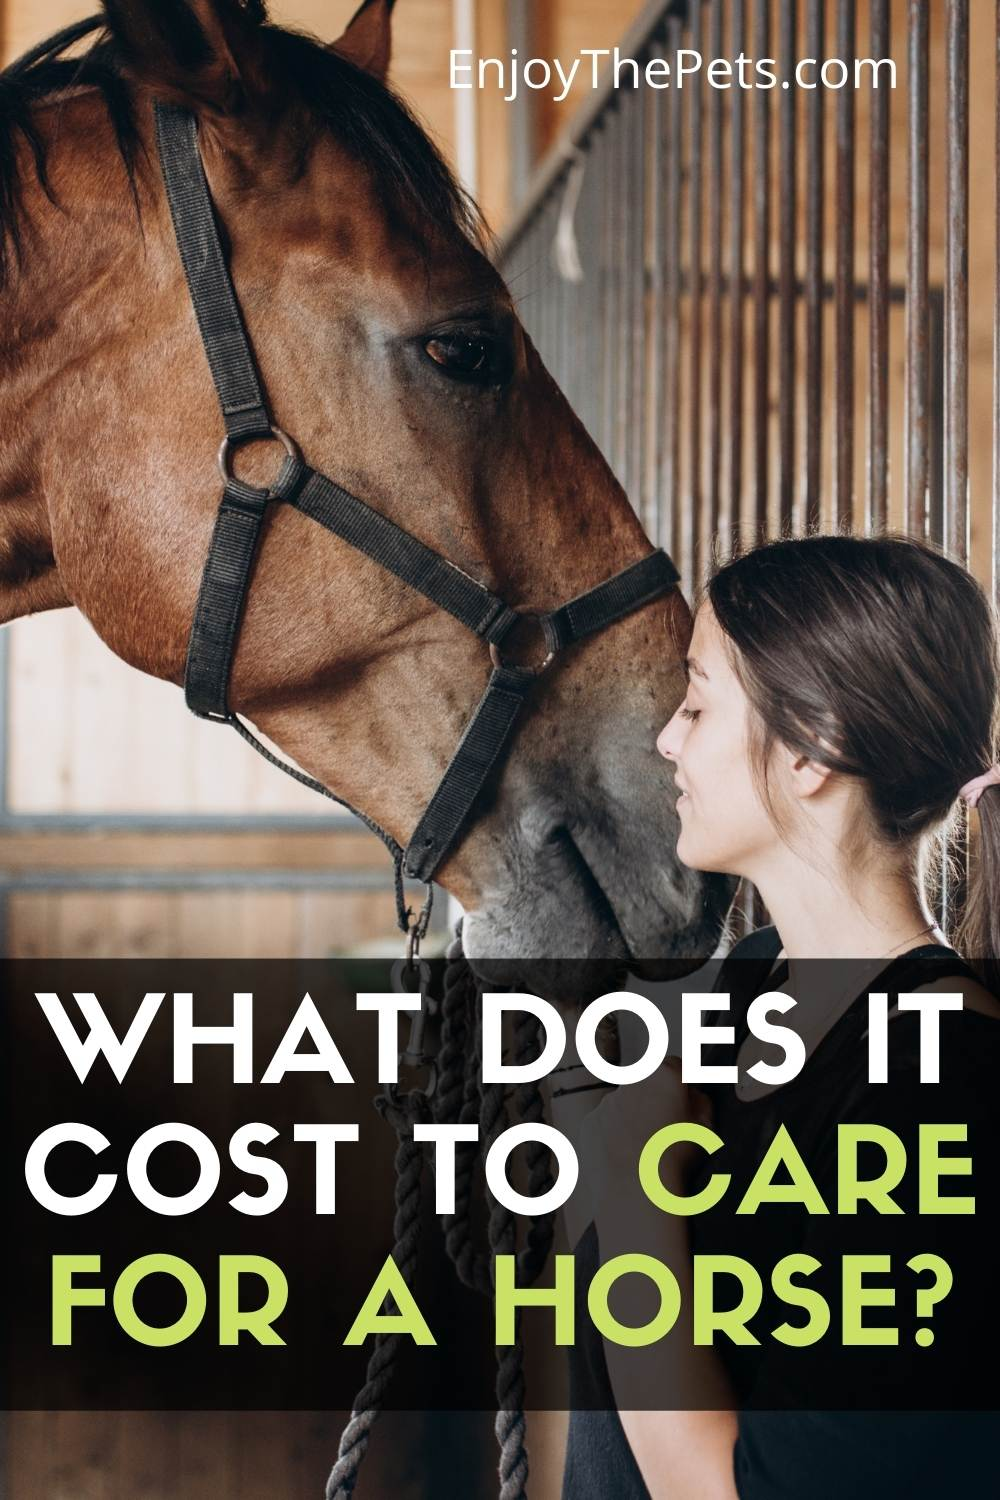 How does it Cost to Take Care of a Horse